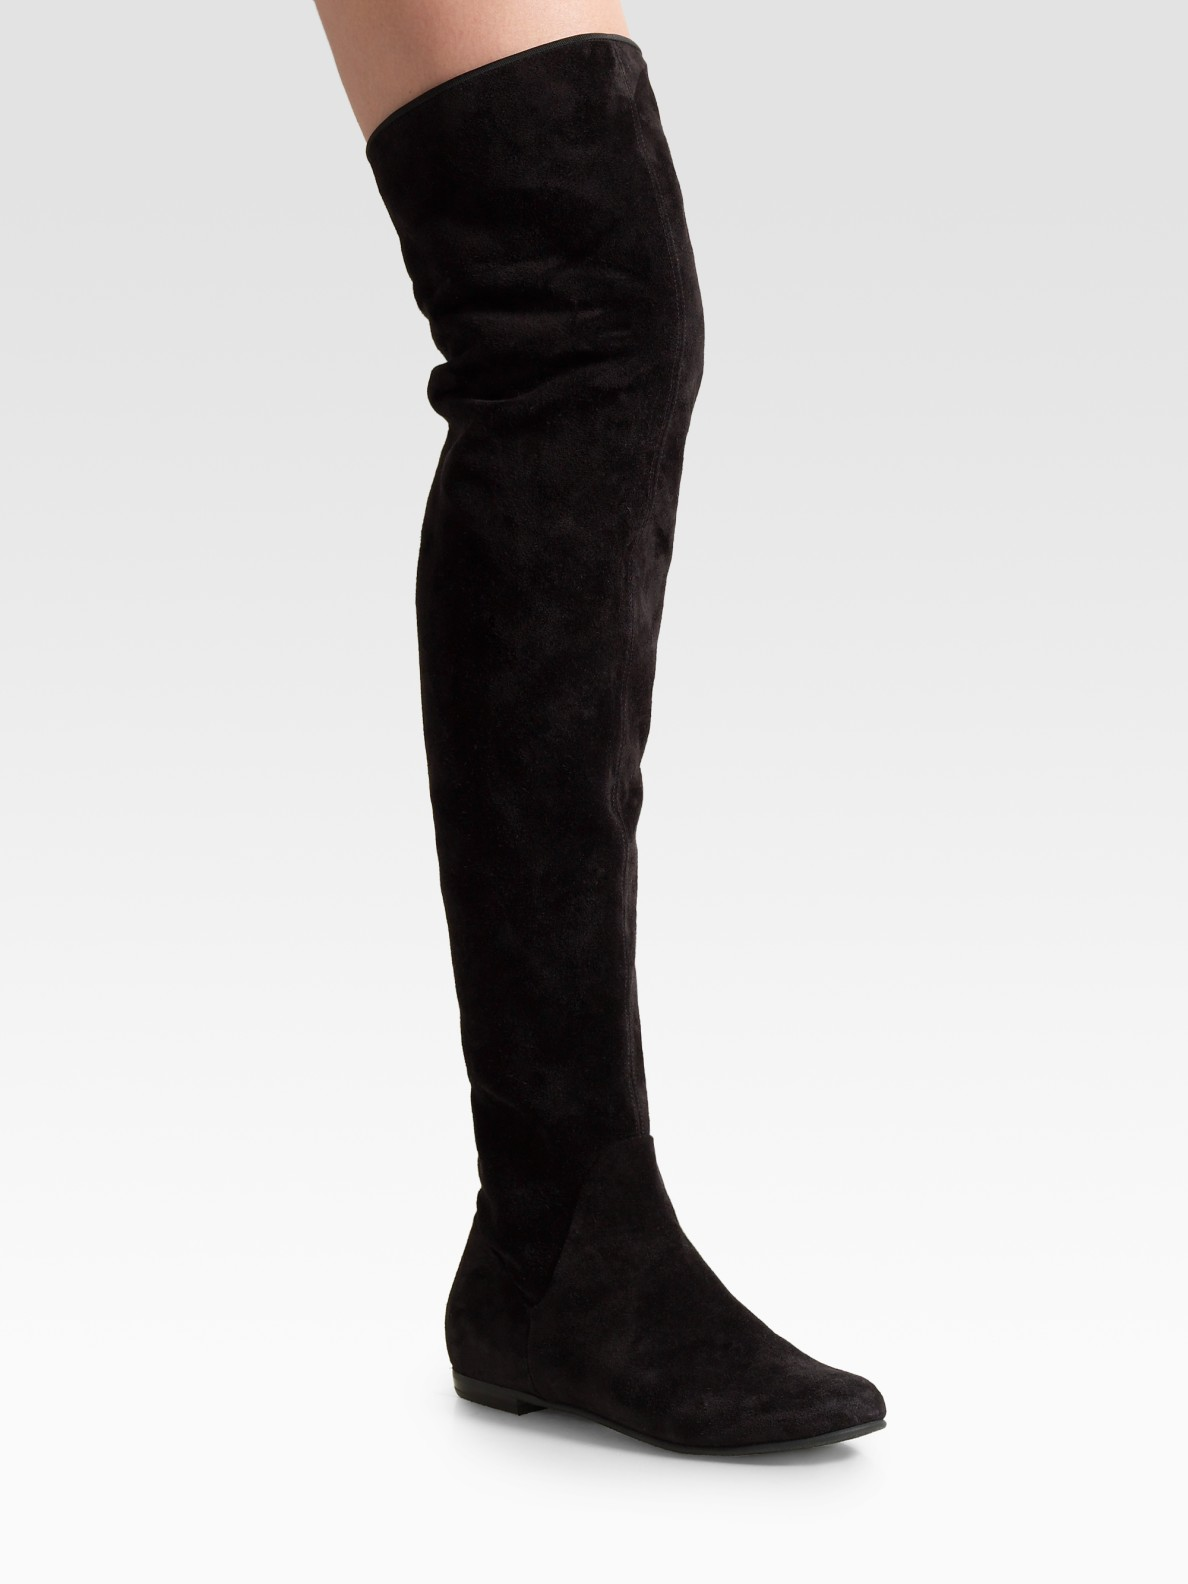 Giuseppe Zanotti Black Suede Over The Knee Flat Boots Lyst